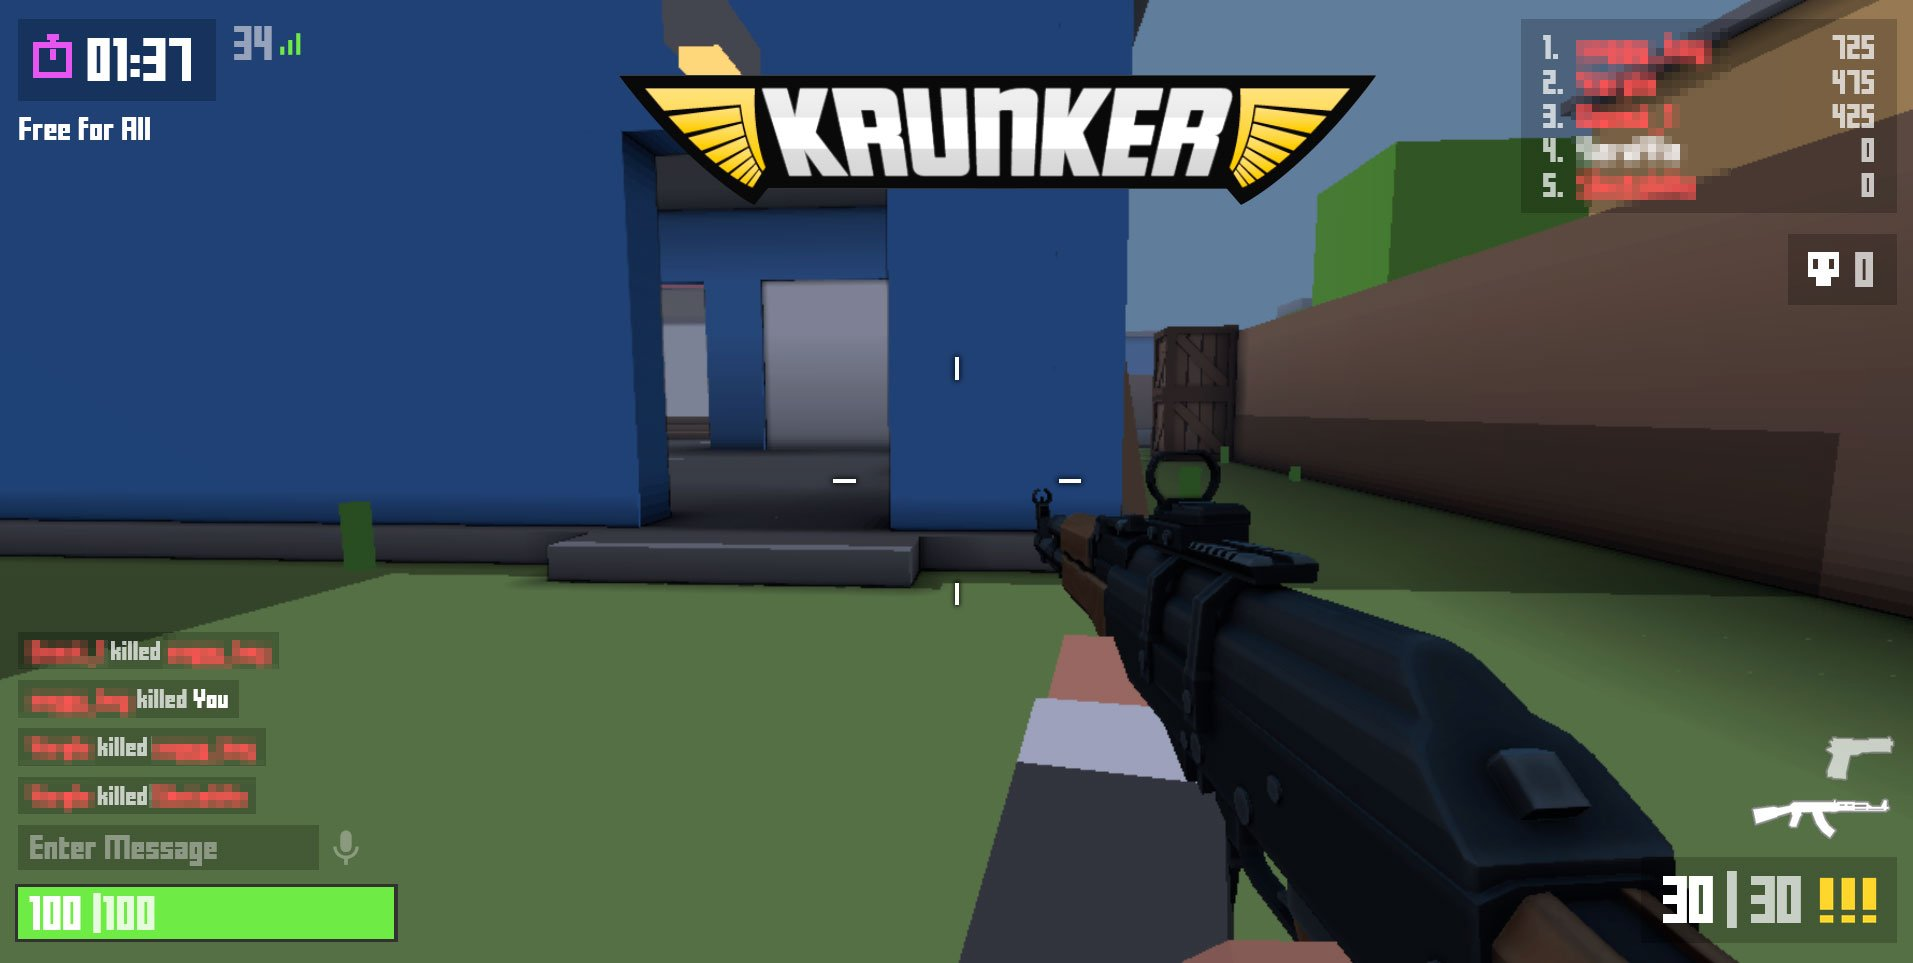 Krunker has landed - and it's got our kids in the crosshairs